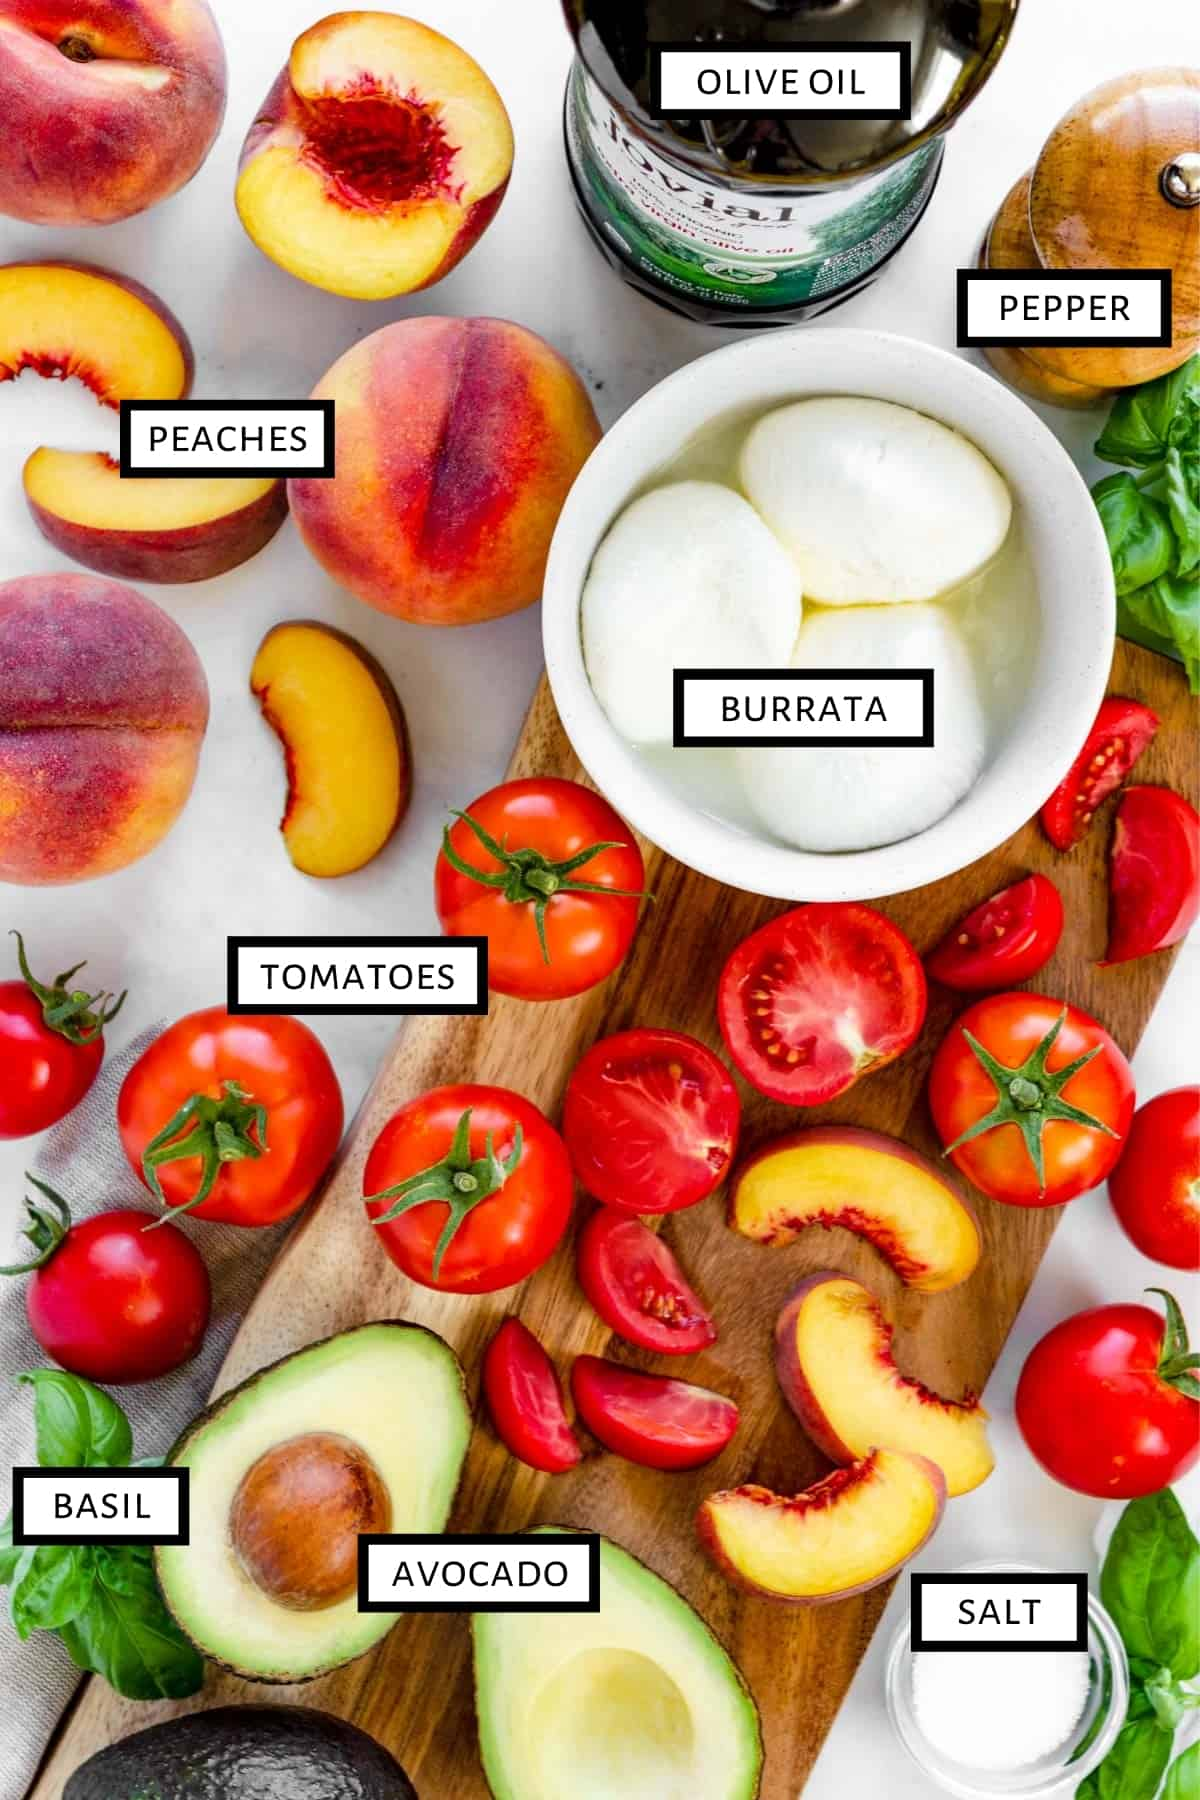 Ingredients for a Peach Caprese Salad are spread out on a cutting board and marble countertop.